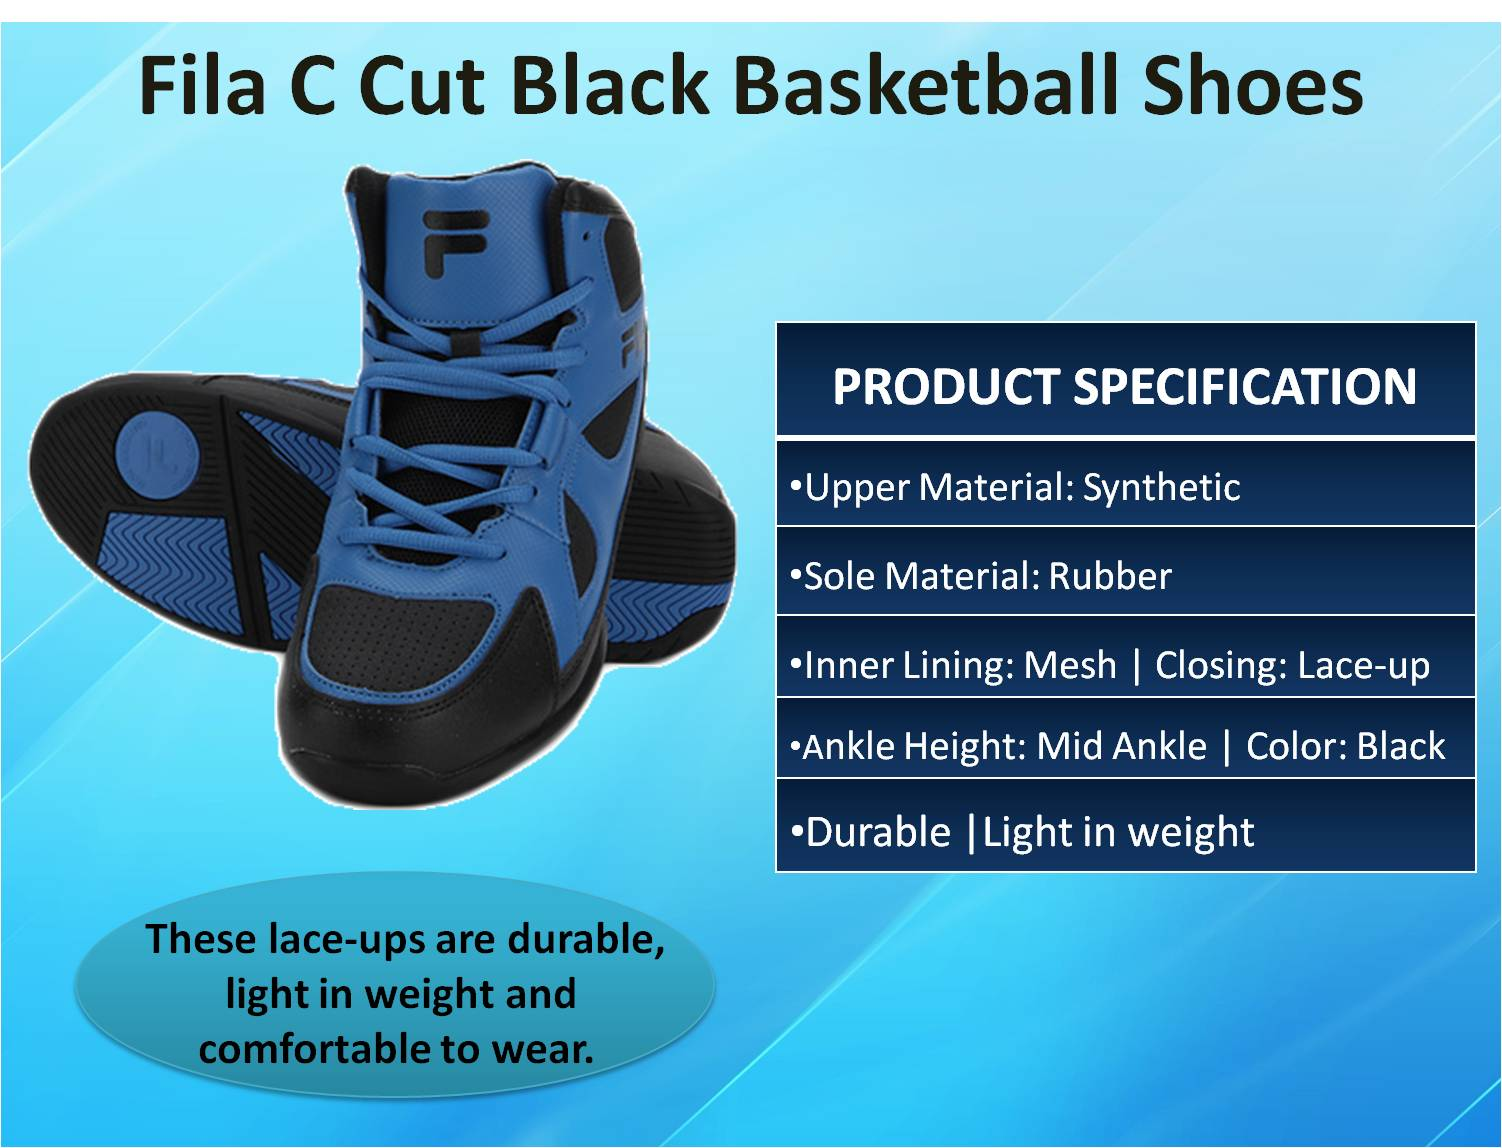 Fila C Cut Black Basketball Shoes